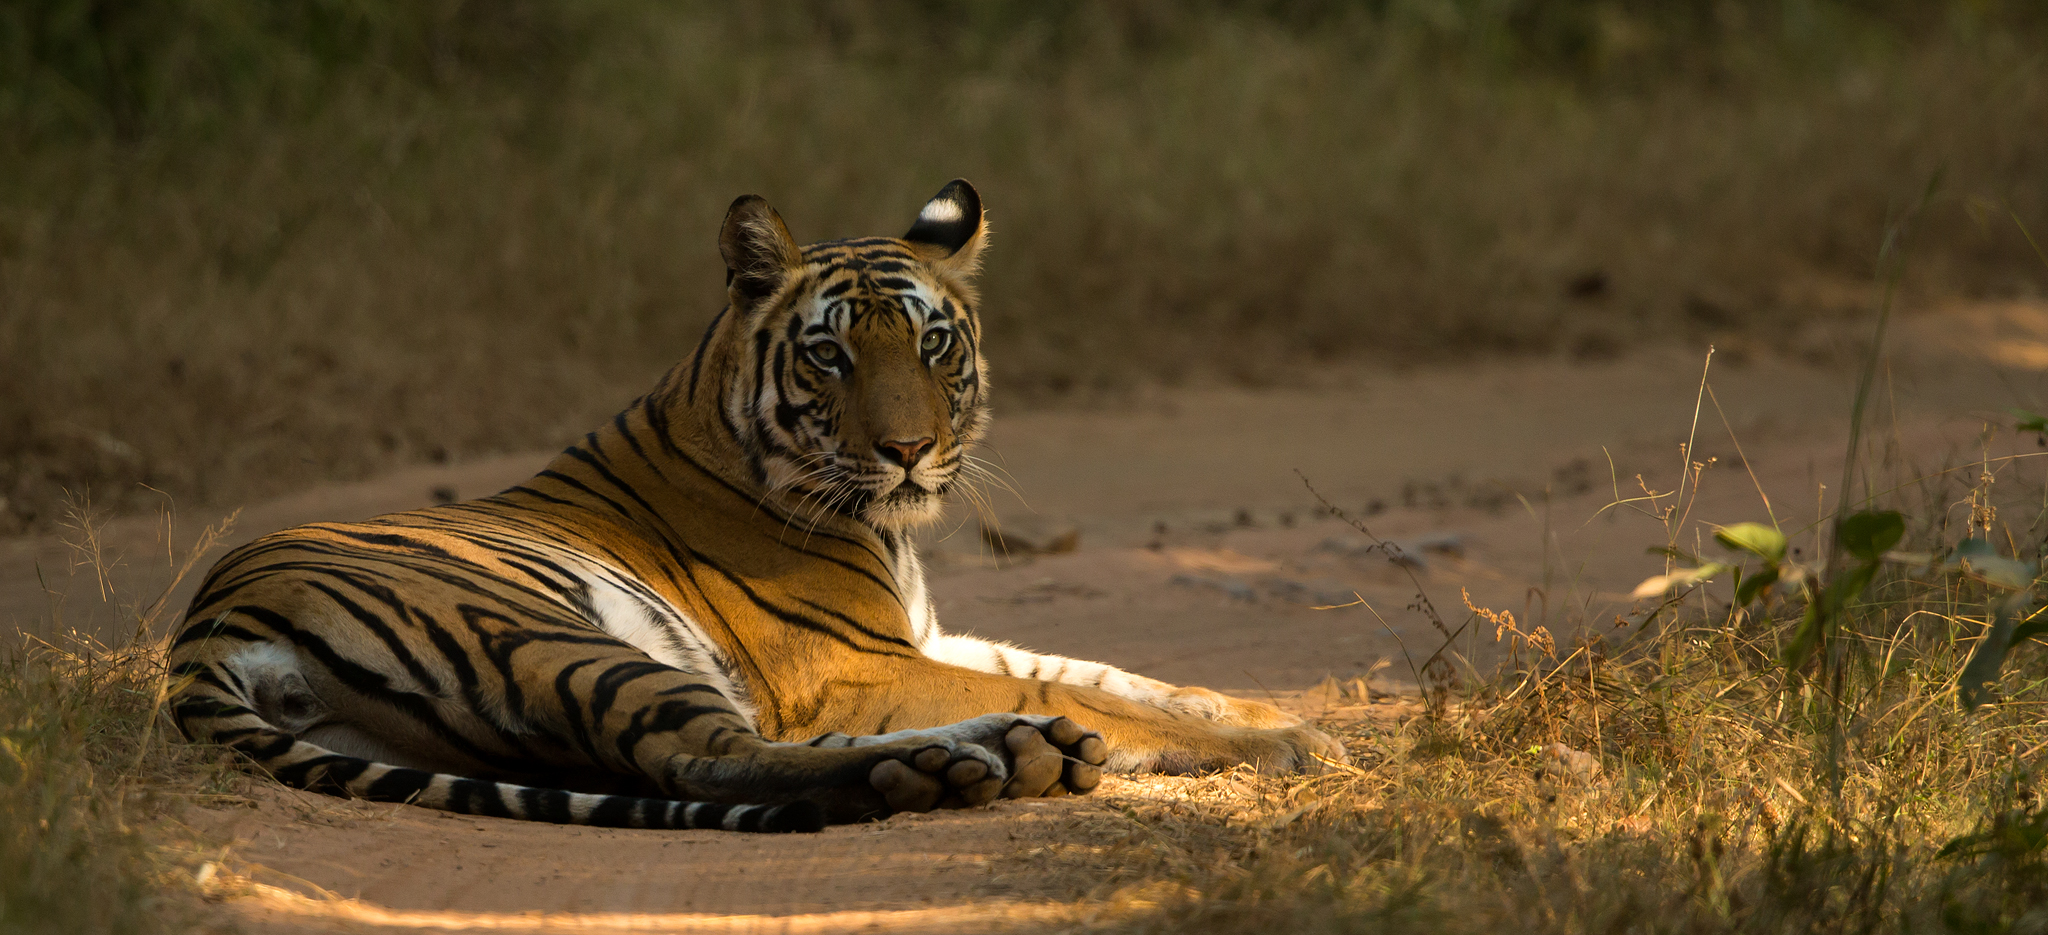 Majestic Tigers - India - 2020 - Natures Images